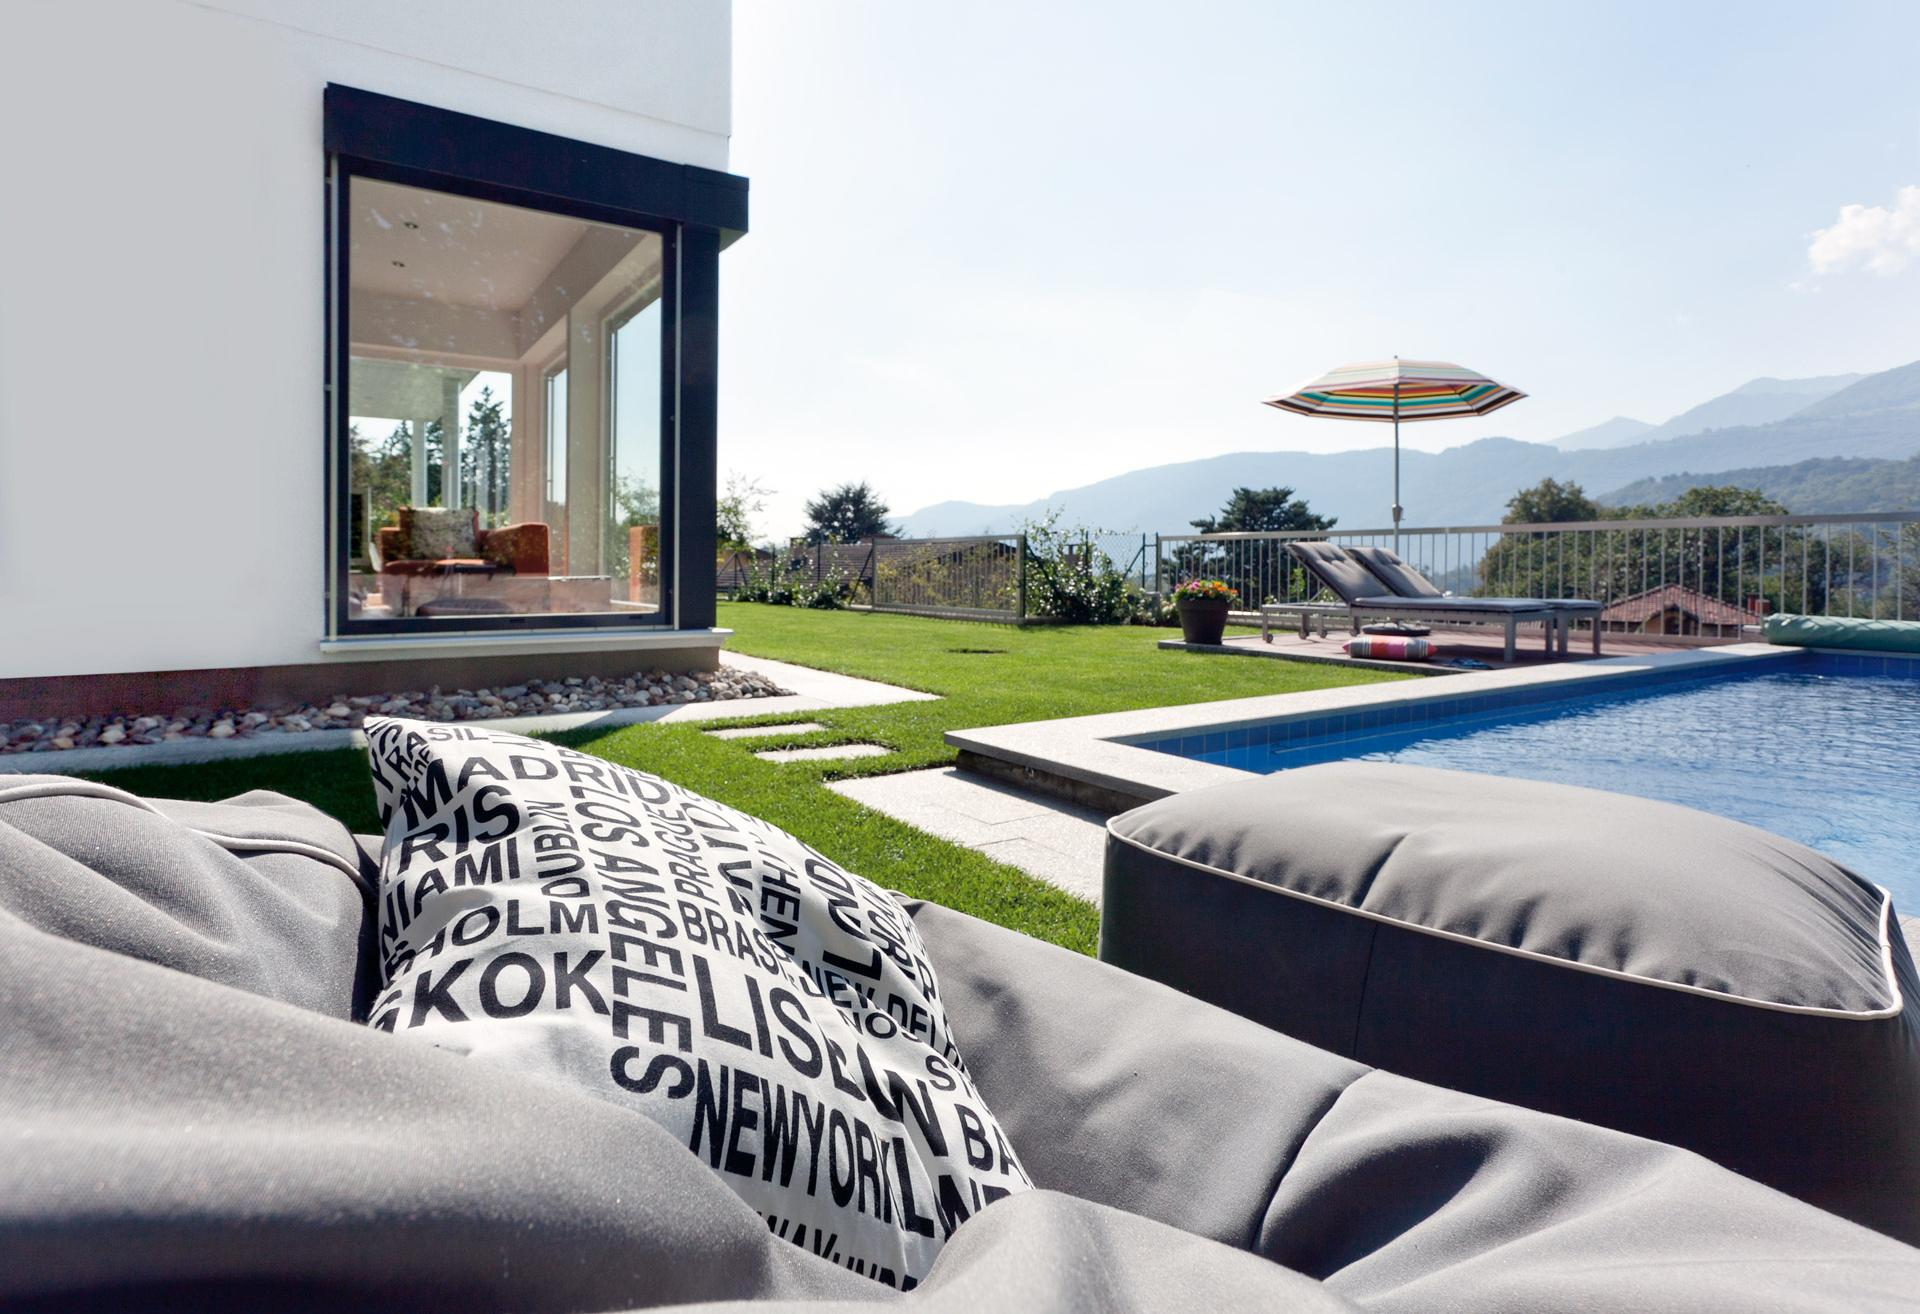 Prefabricated house with pool in the garden